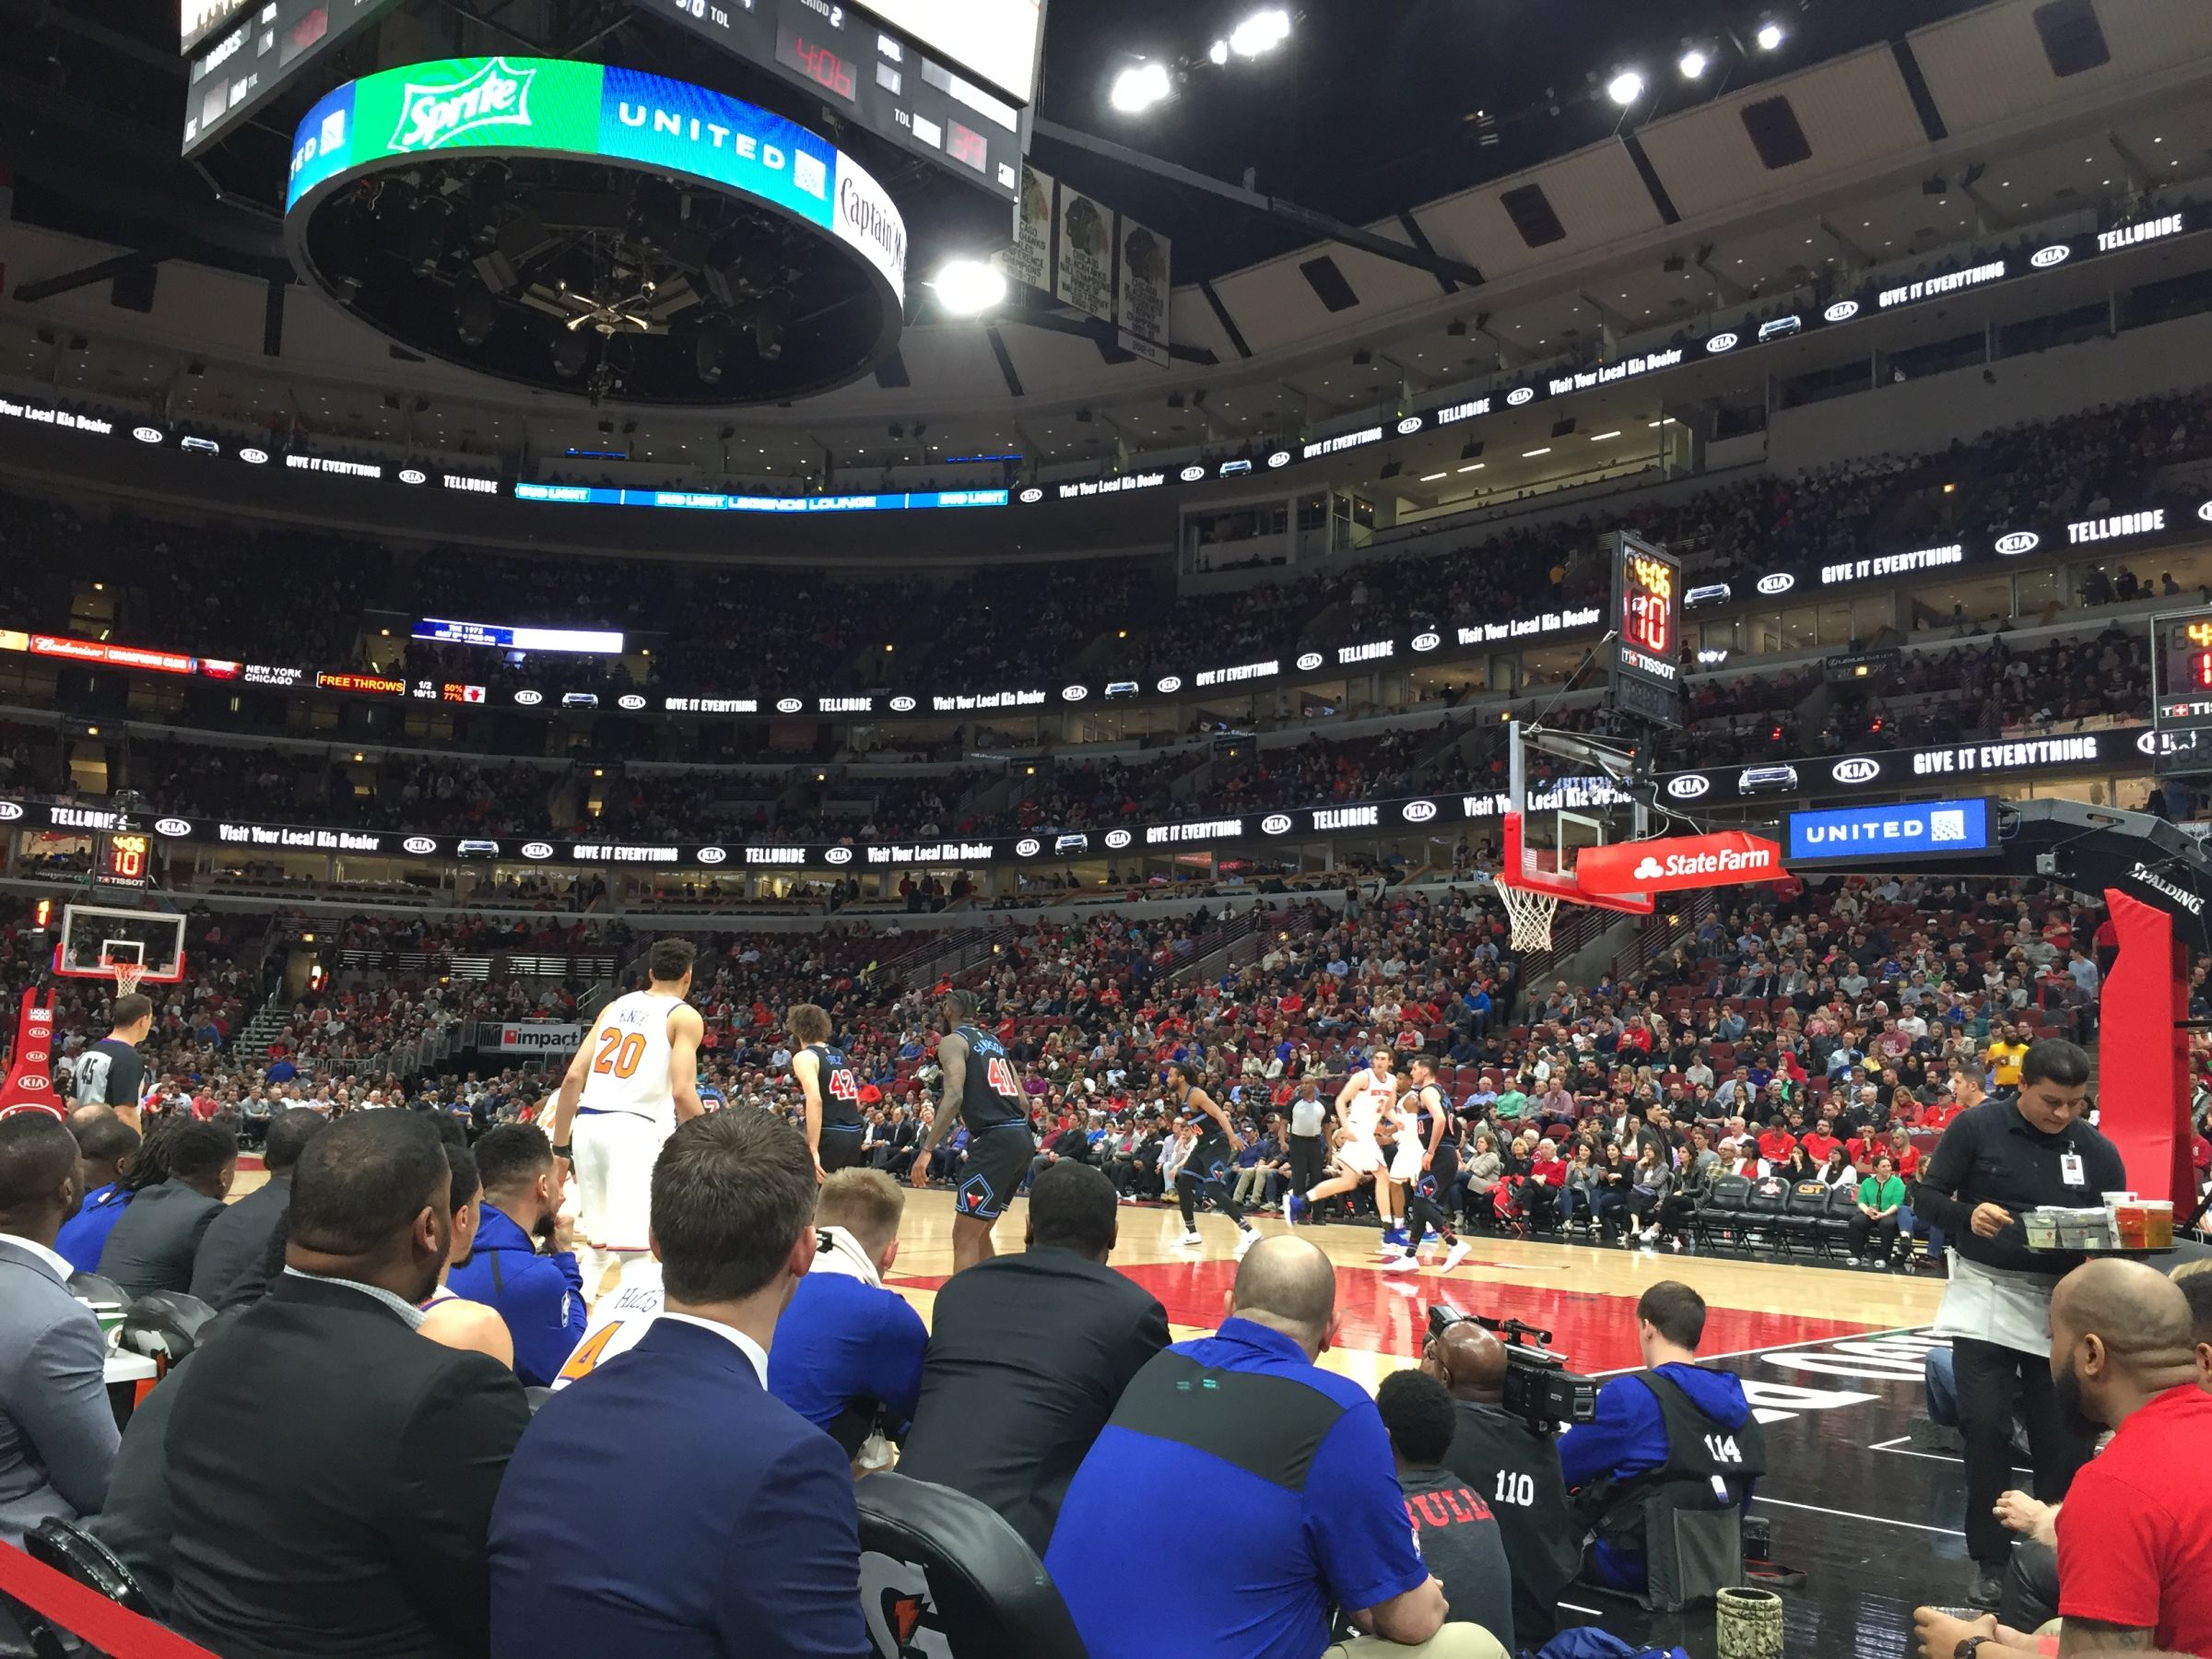 Chicago Bulls Seat View for United Center Section 121, Row A, Seat 3